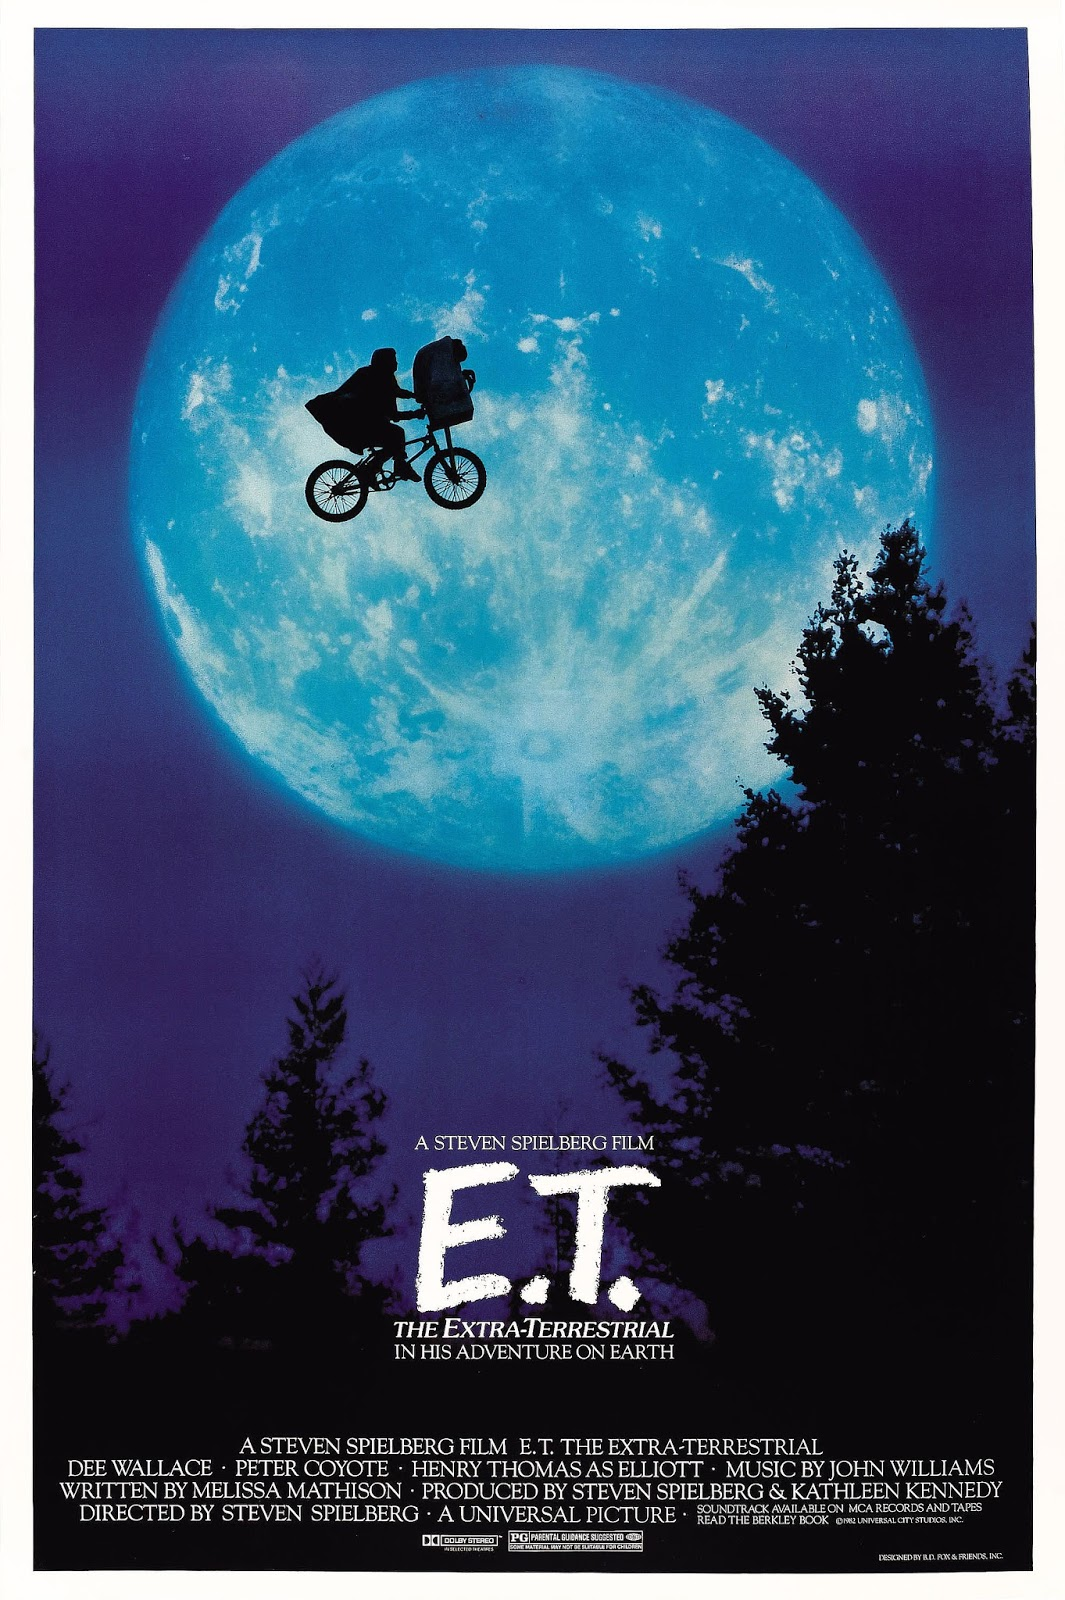 et art 6 2002 xr650r wiring diagram now and then steven spielberg 39s e t the extra